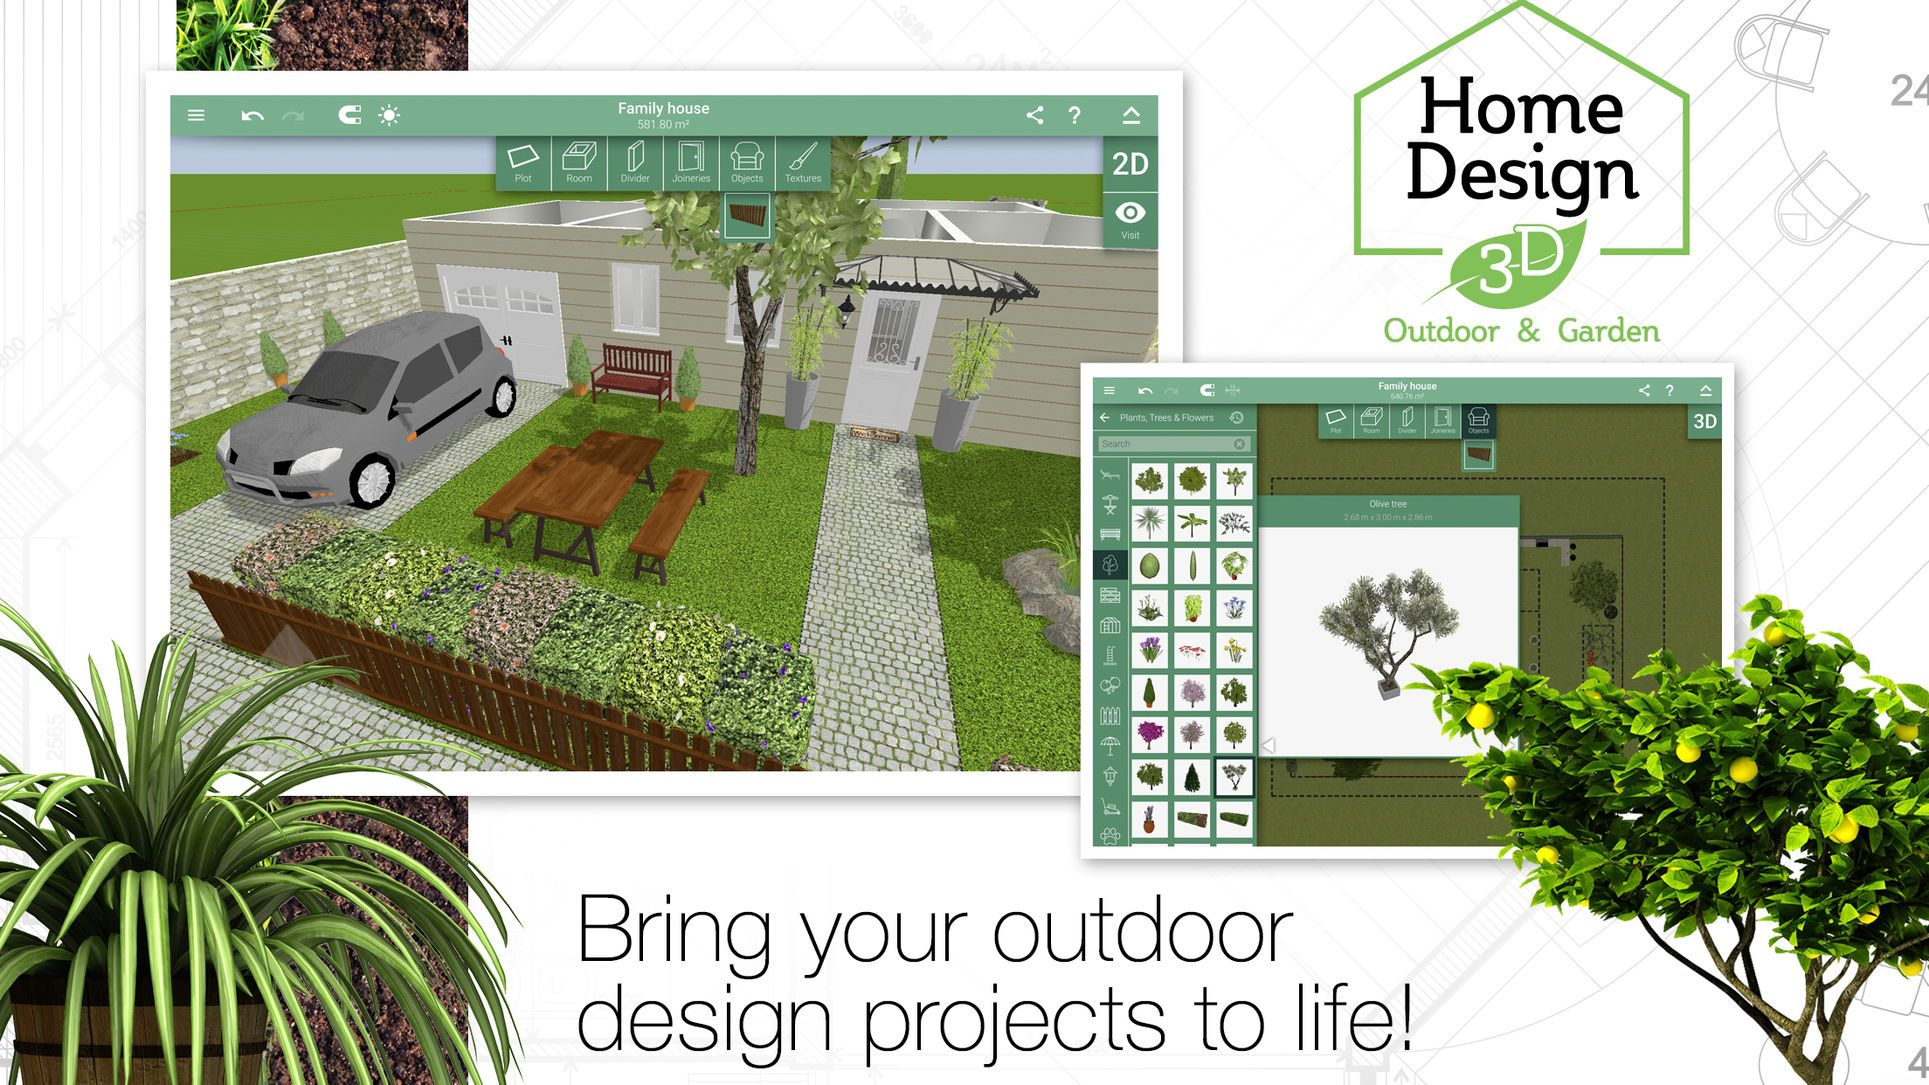 Home Design 3d Outdoor And Garden Lifestyle Productivity Apps Ios